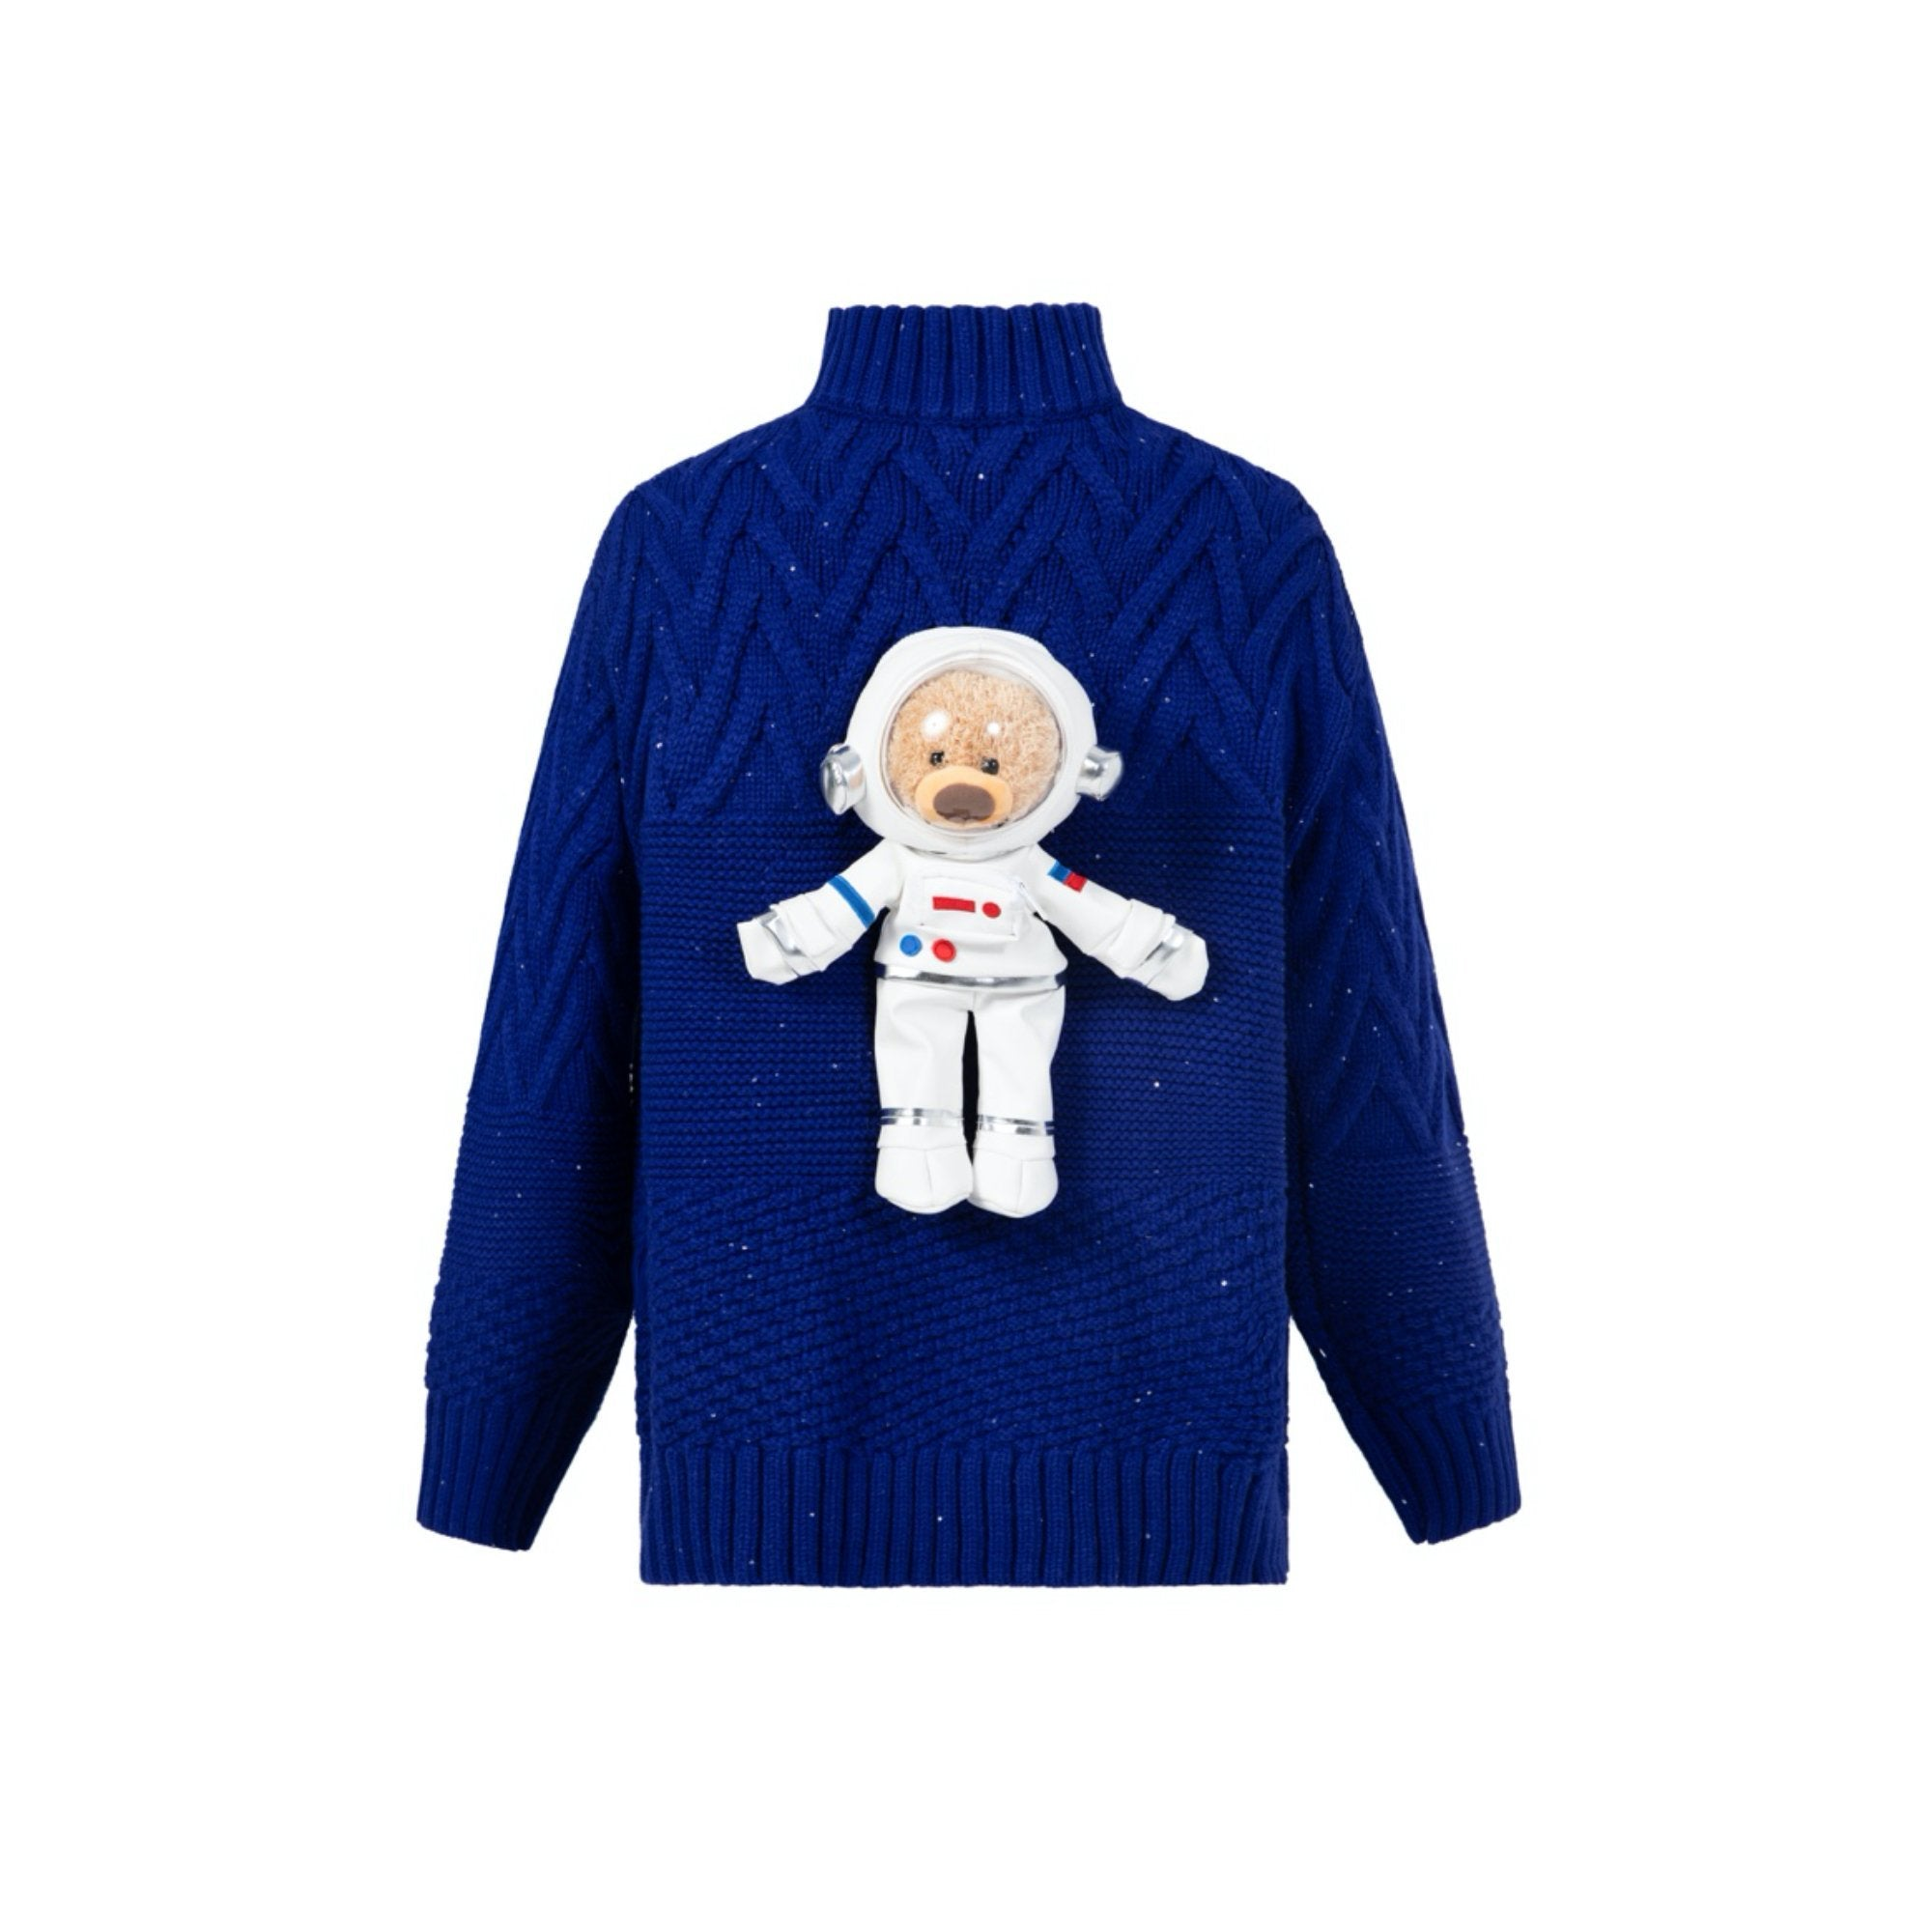 13 DE MARZO Azure Space Astronaut Teddy Bear Knit Sweater Blue | MADA IN CHINA